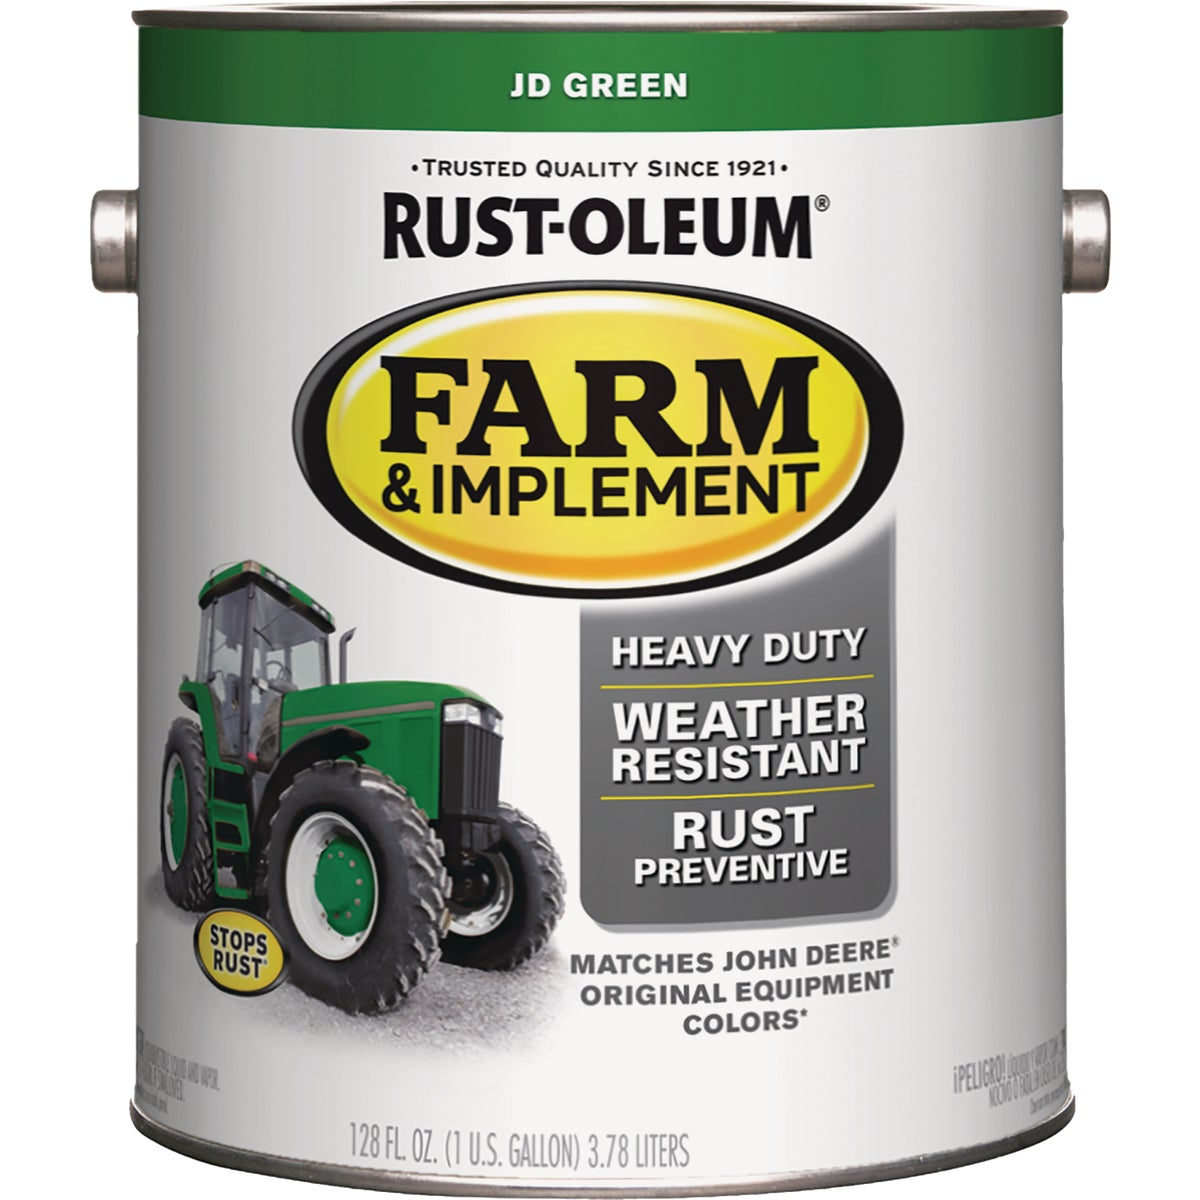 JD GREEN IMPLEMNT ENAMEL - 7435-402 by Rustoleum